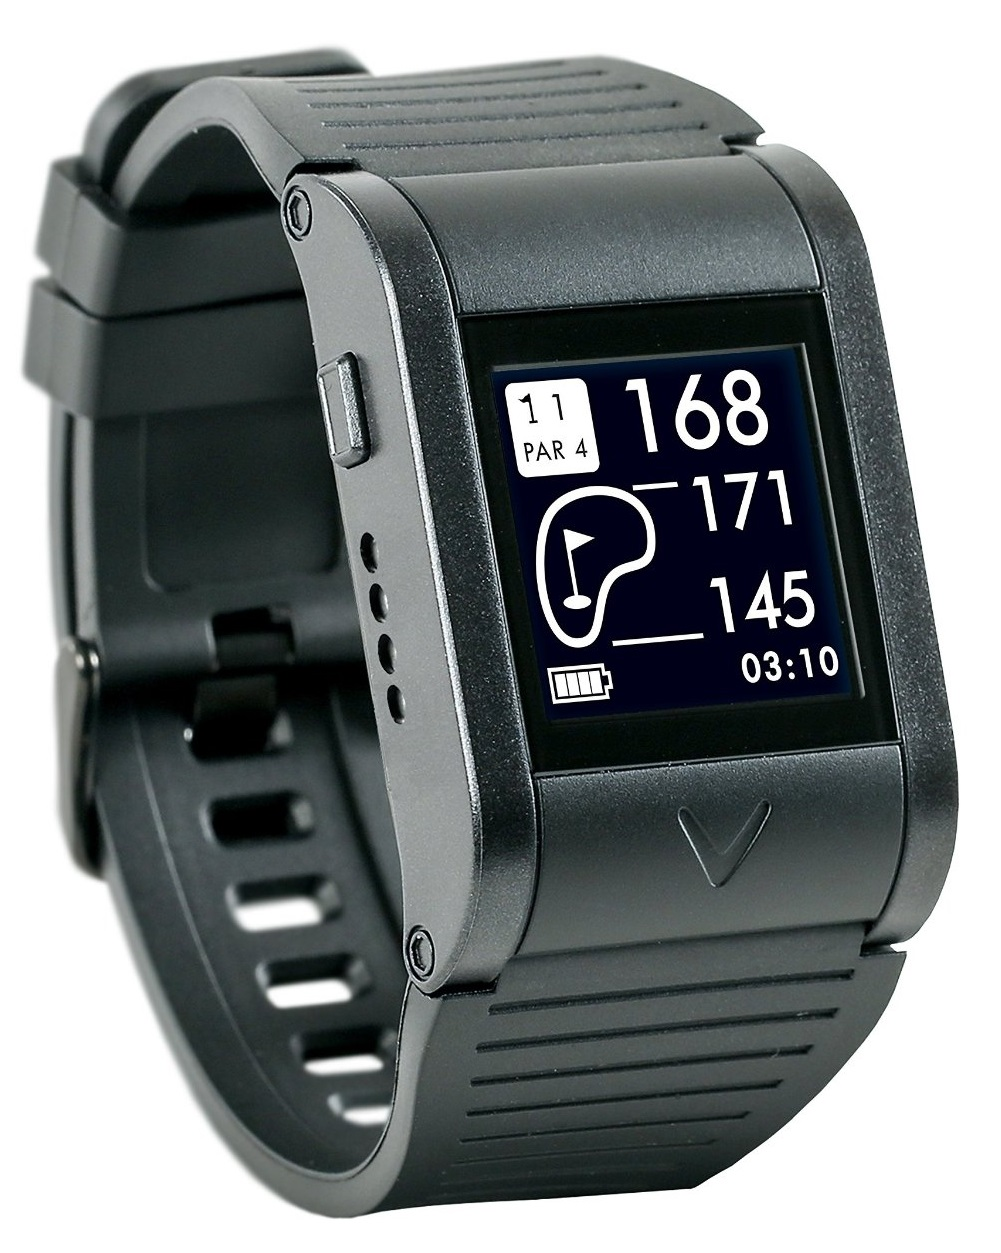 Callaway Golf GPS Systems, Units & Watches